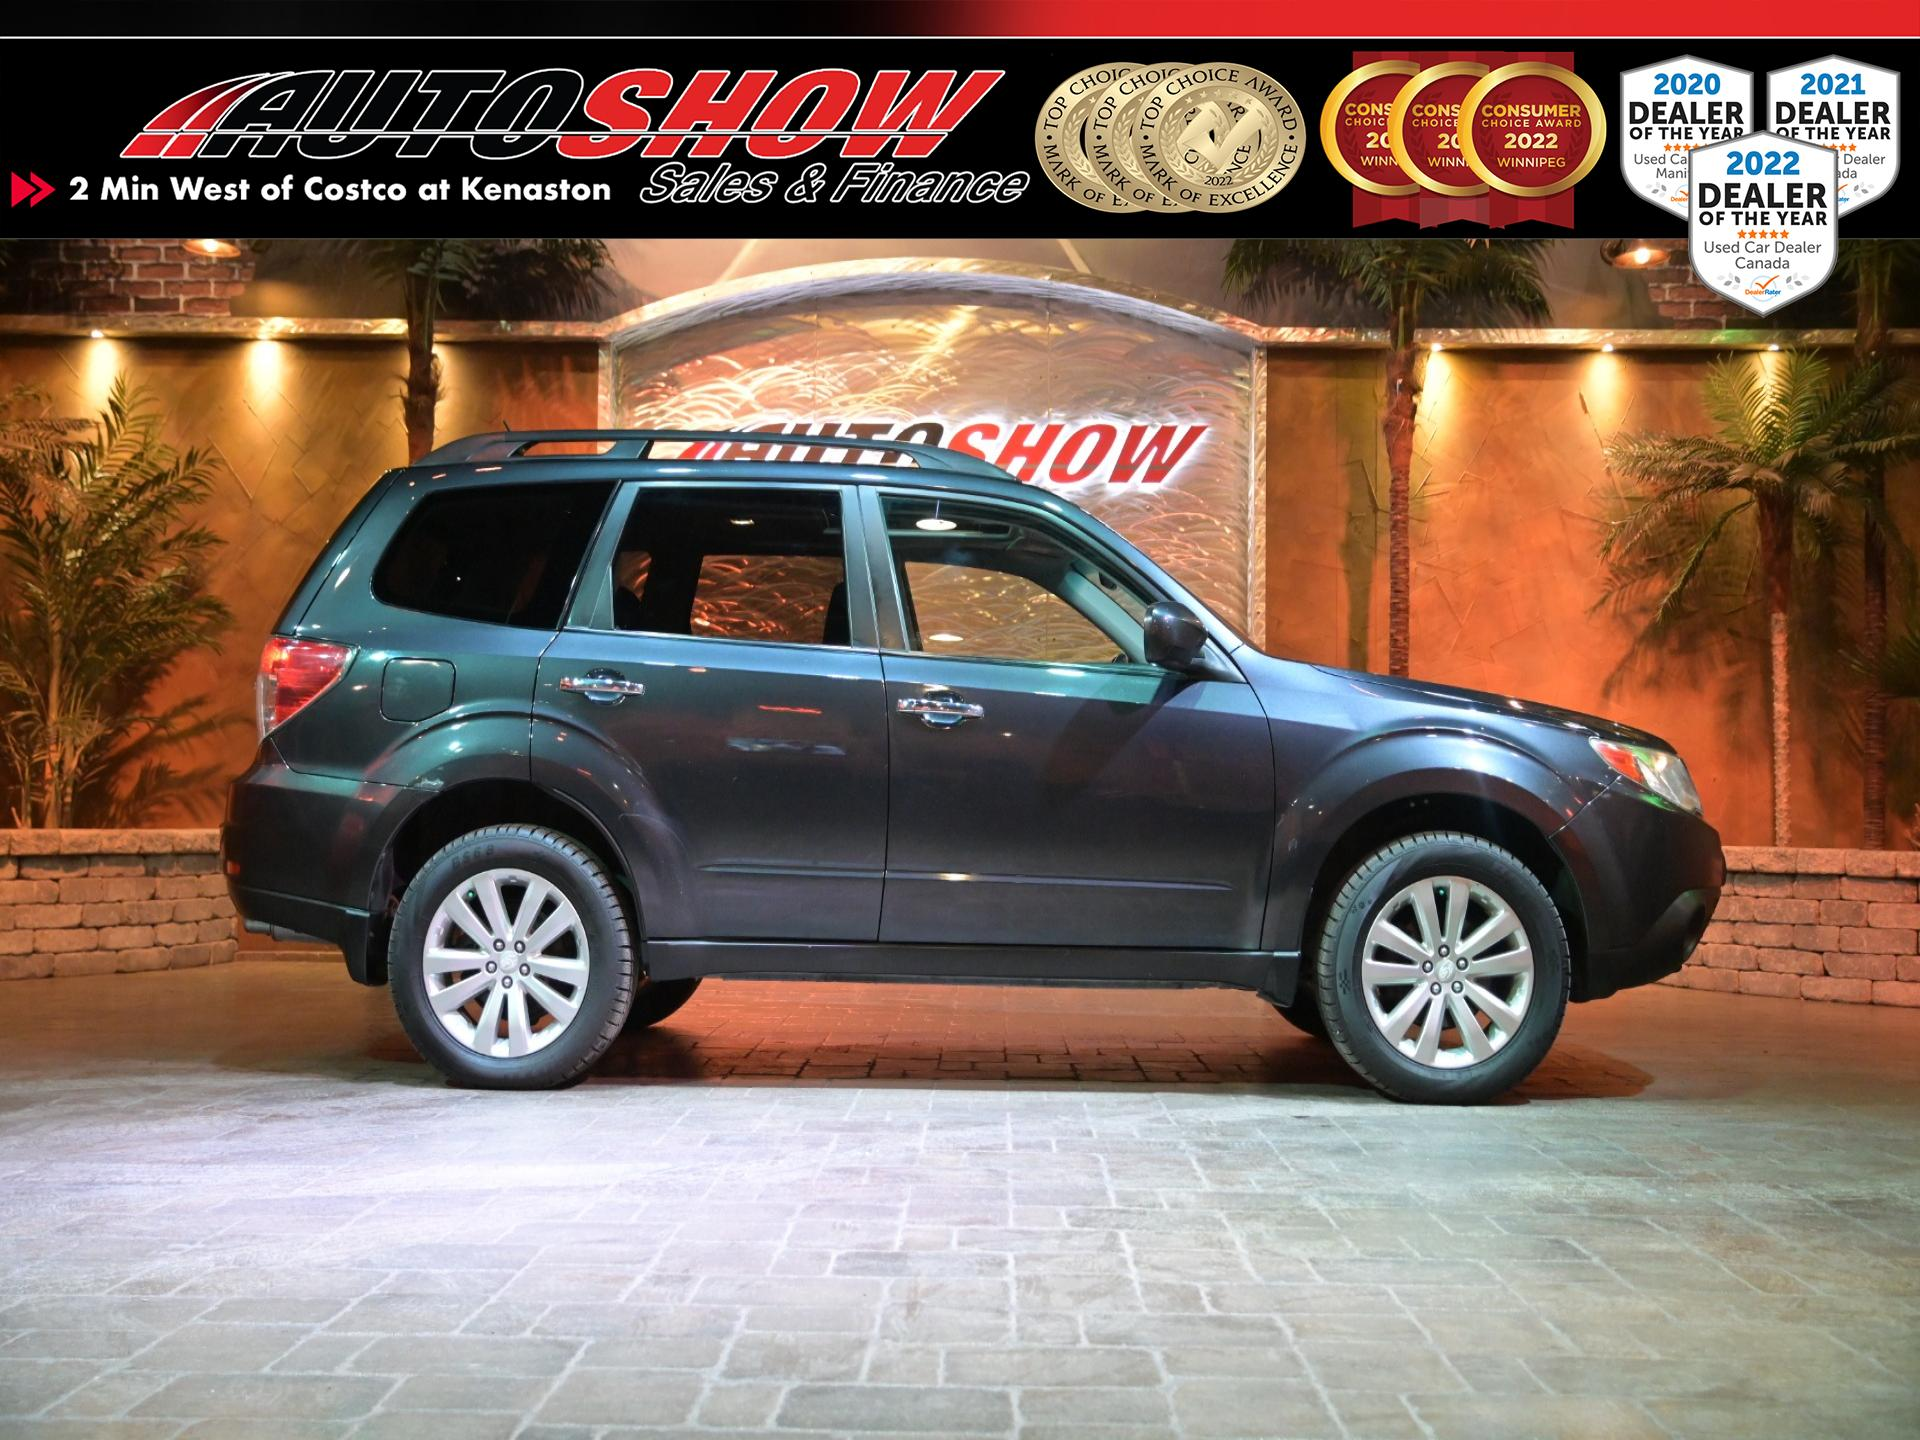 used 2011 Subaru Forester car, priced at $9,600